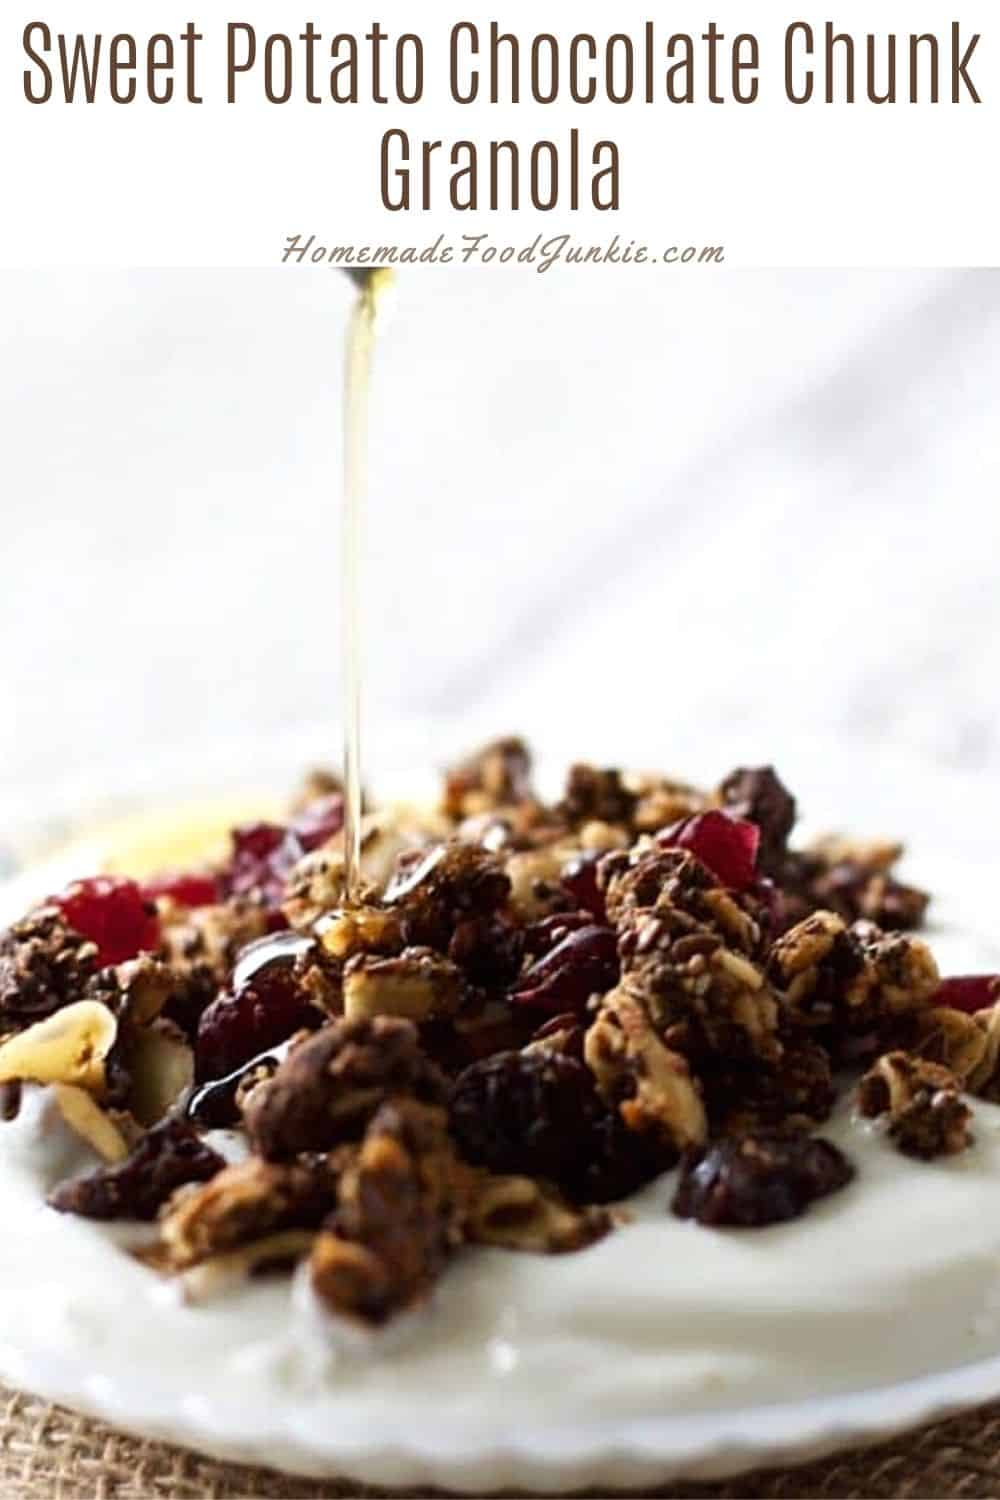 Sweet potato chocolate chunk granola-pin image